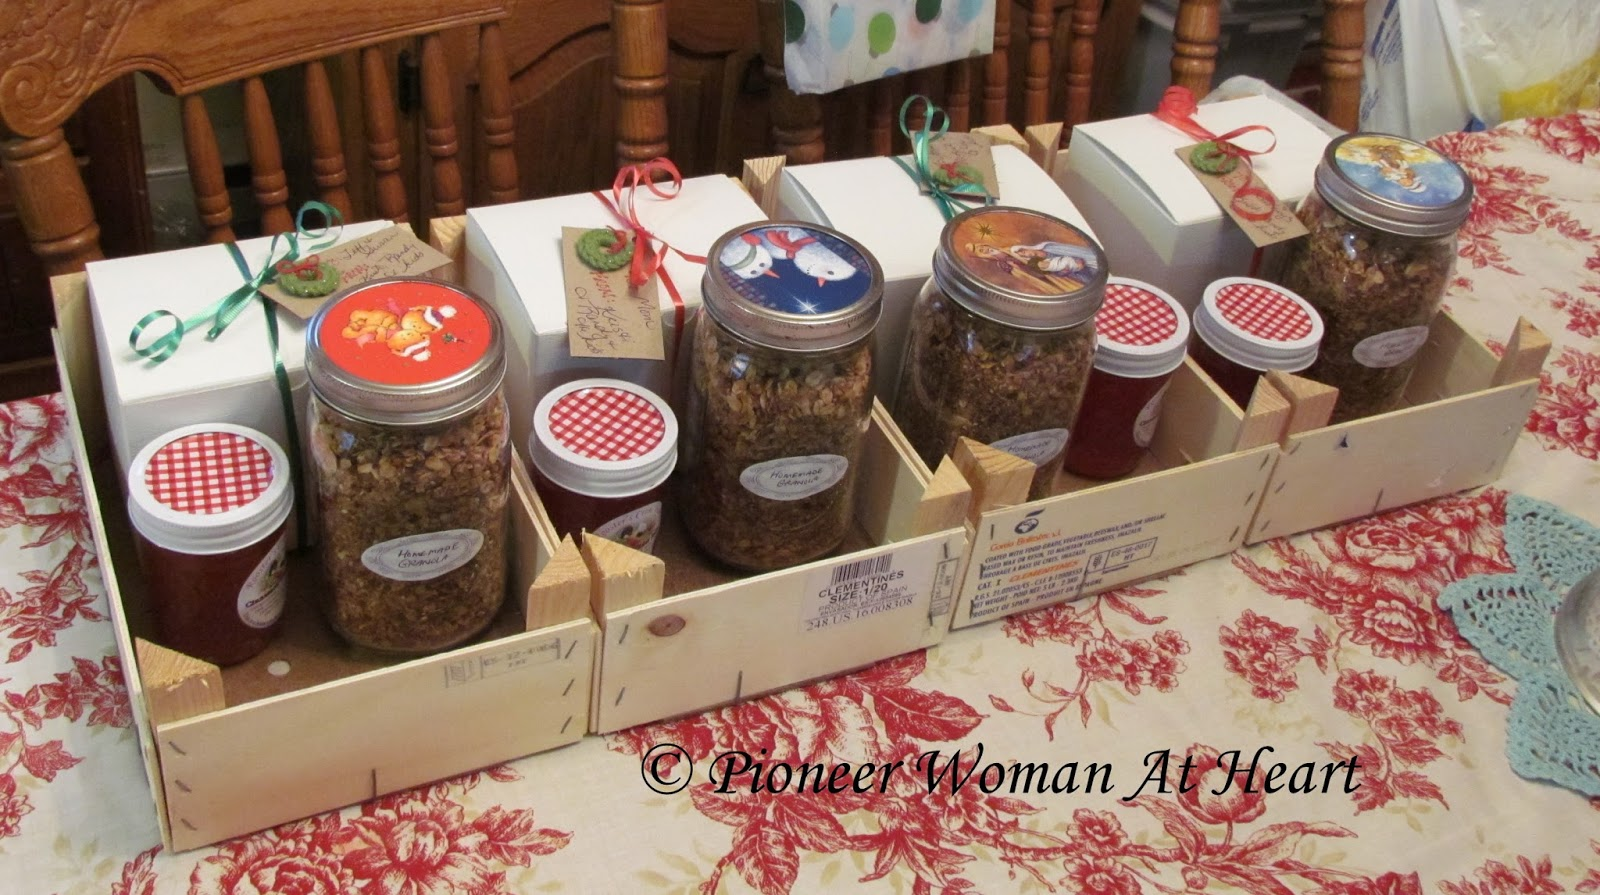 Pioneer woman at heart homemade gift ideas for the holidays for Homemade christmas gifts for women